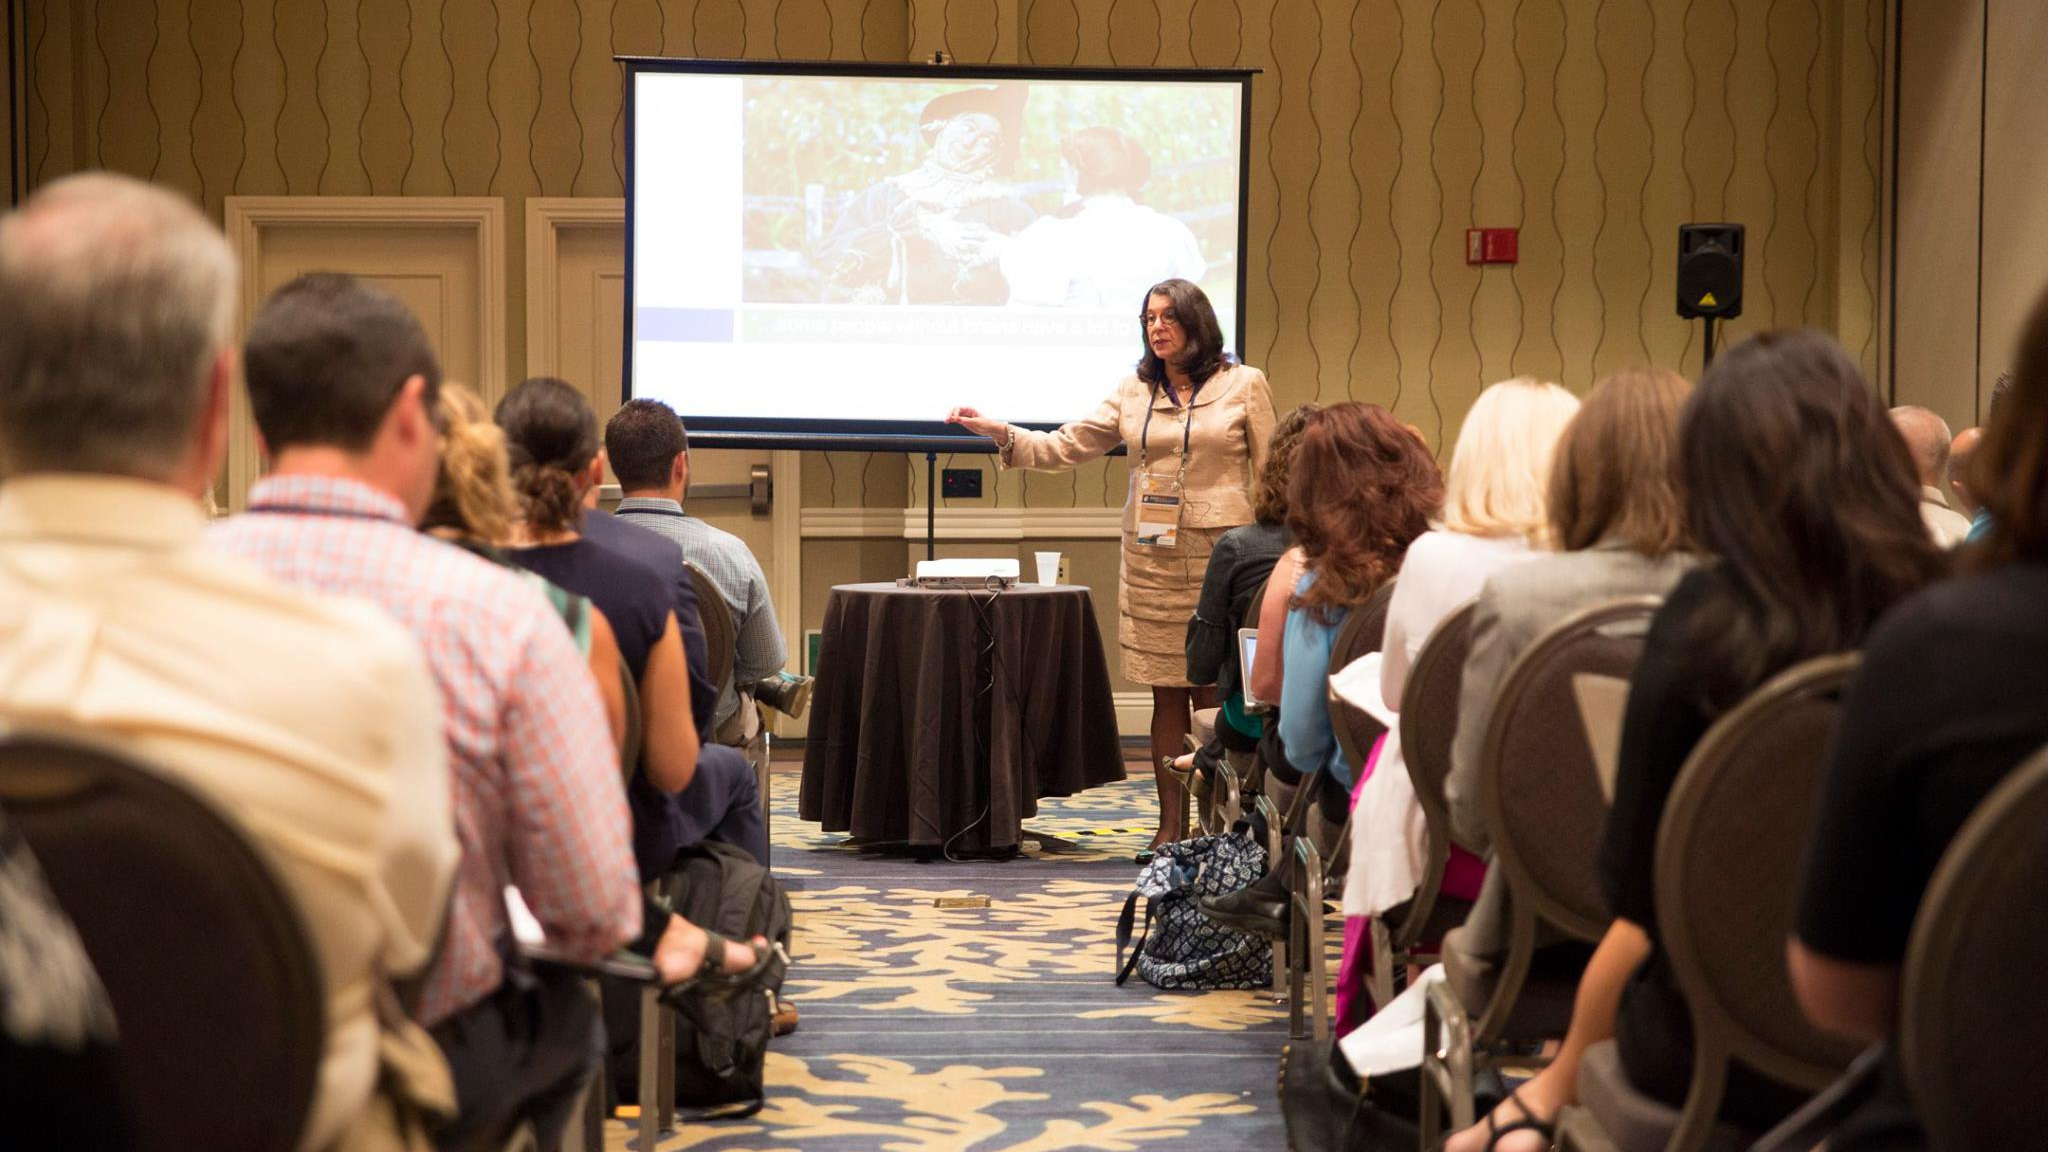 Rebecca Rothey, CFRE, CAP®, AEP®, gave an engaging presentation on Working with Professional Advisors to a packed room at the annual Practical Planned Giving Conference.